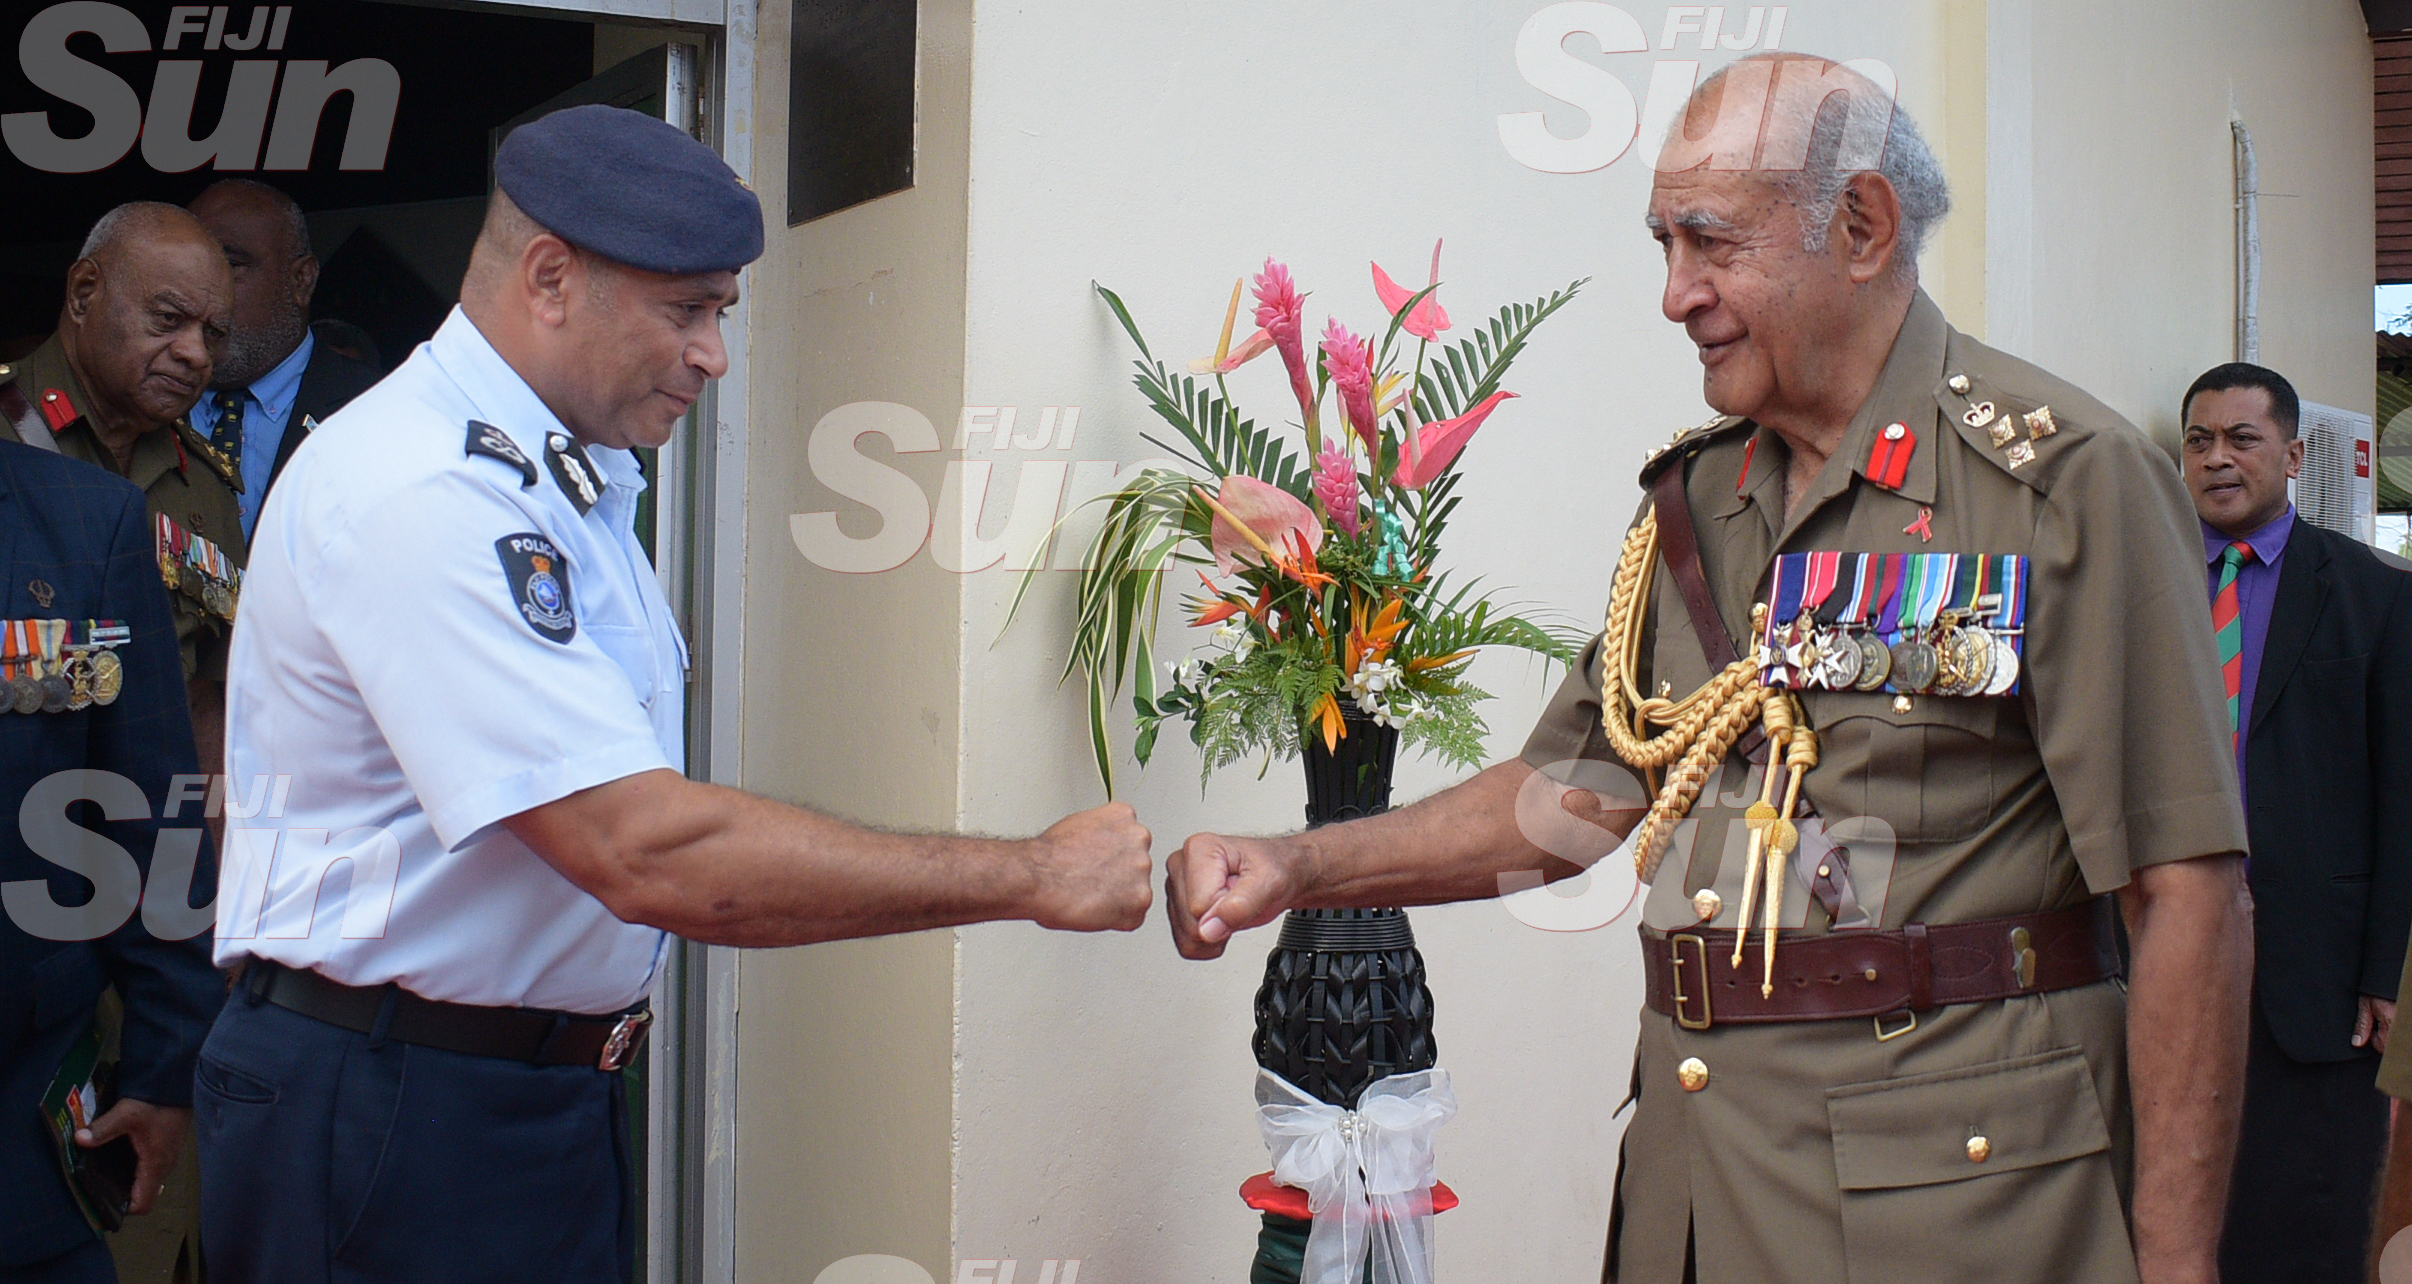 Police Commissioner Sitiveni Qiliho congratulates Brigadier General (Retired) Ratu Epeli Nailatikau on his appointment Colonel of the Regiment at QEB Church on July 21, 2020. Photo: Ronald Kumar.